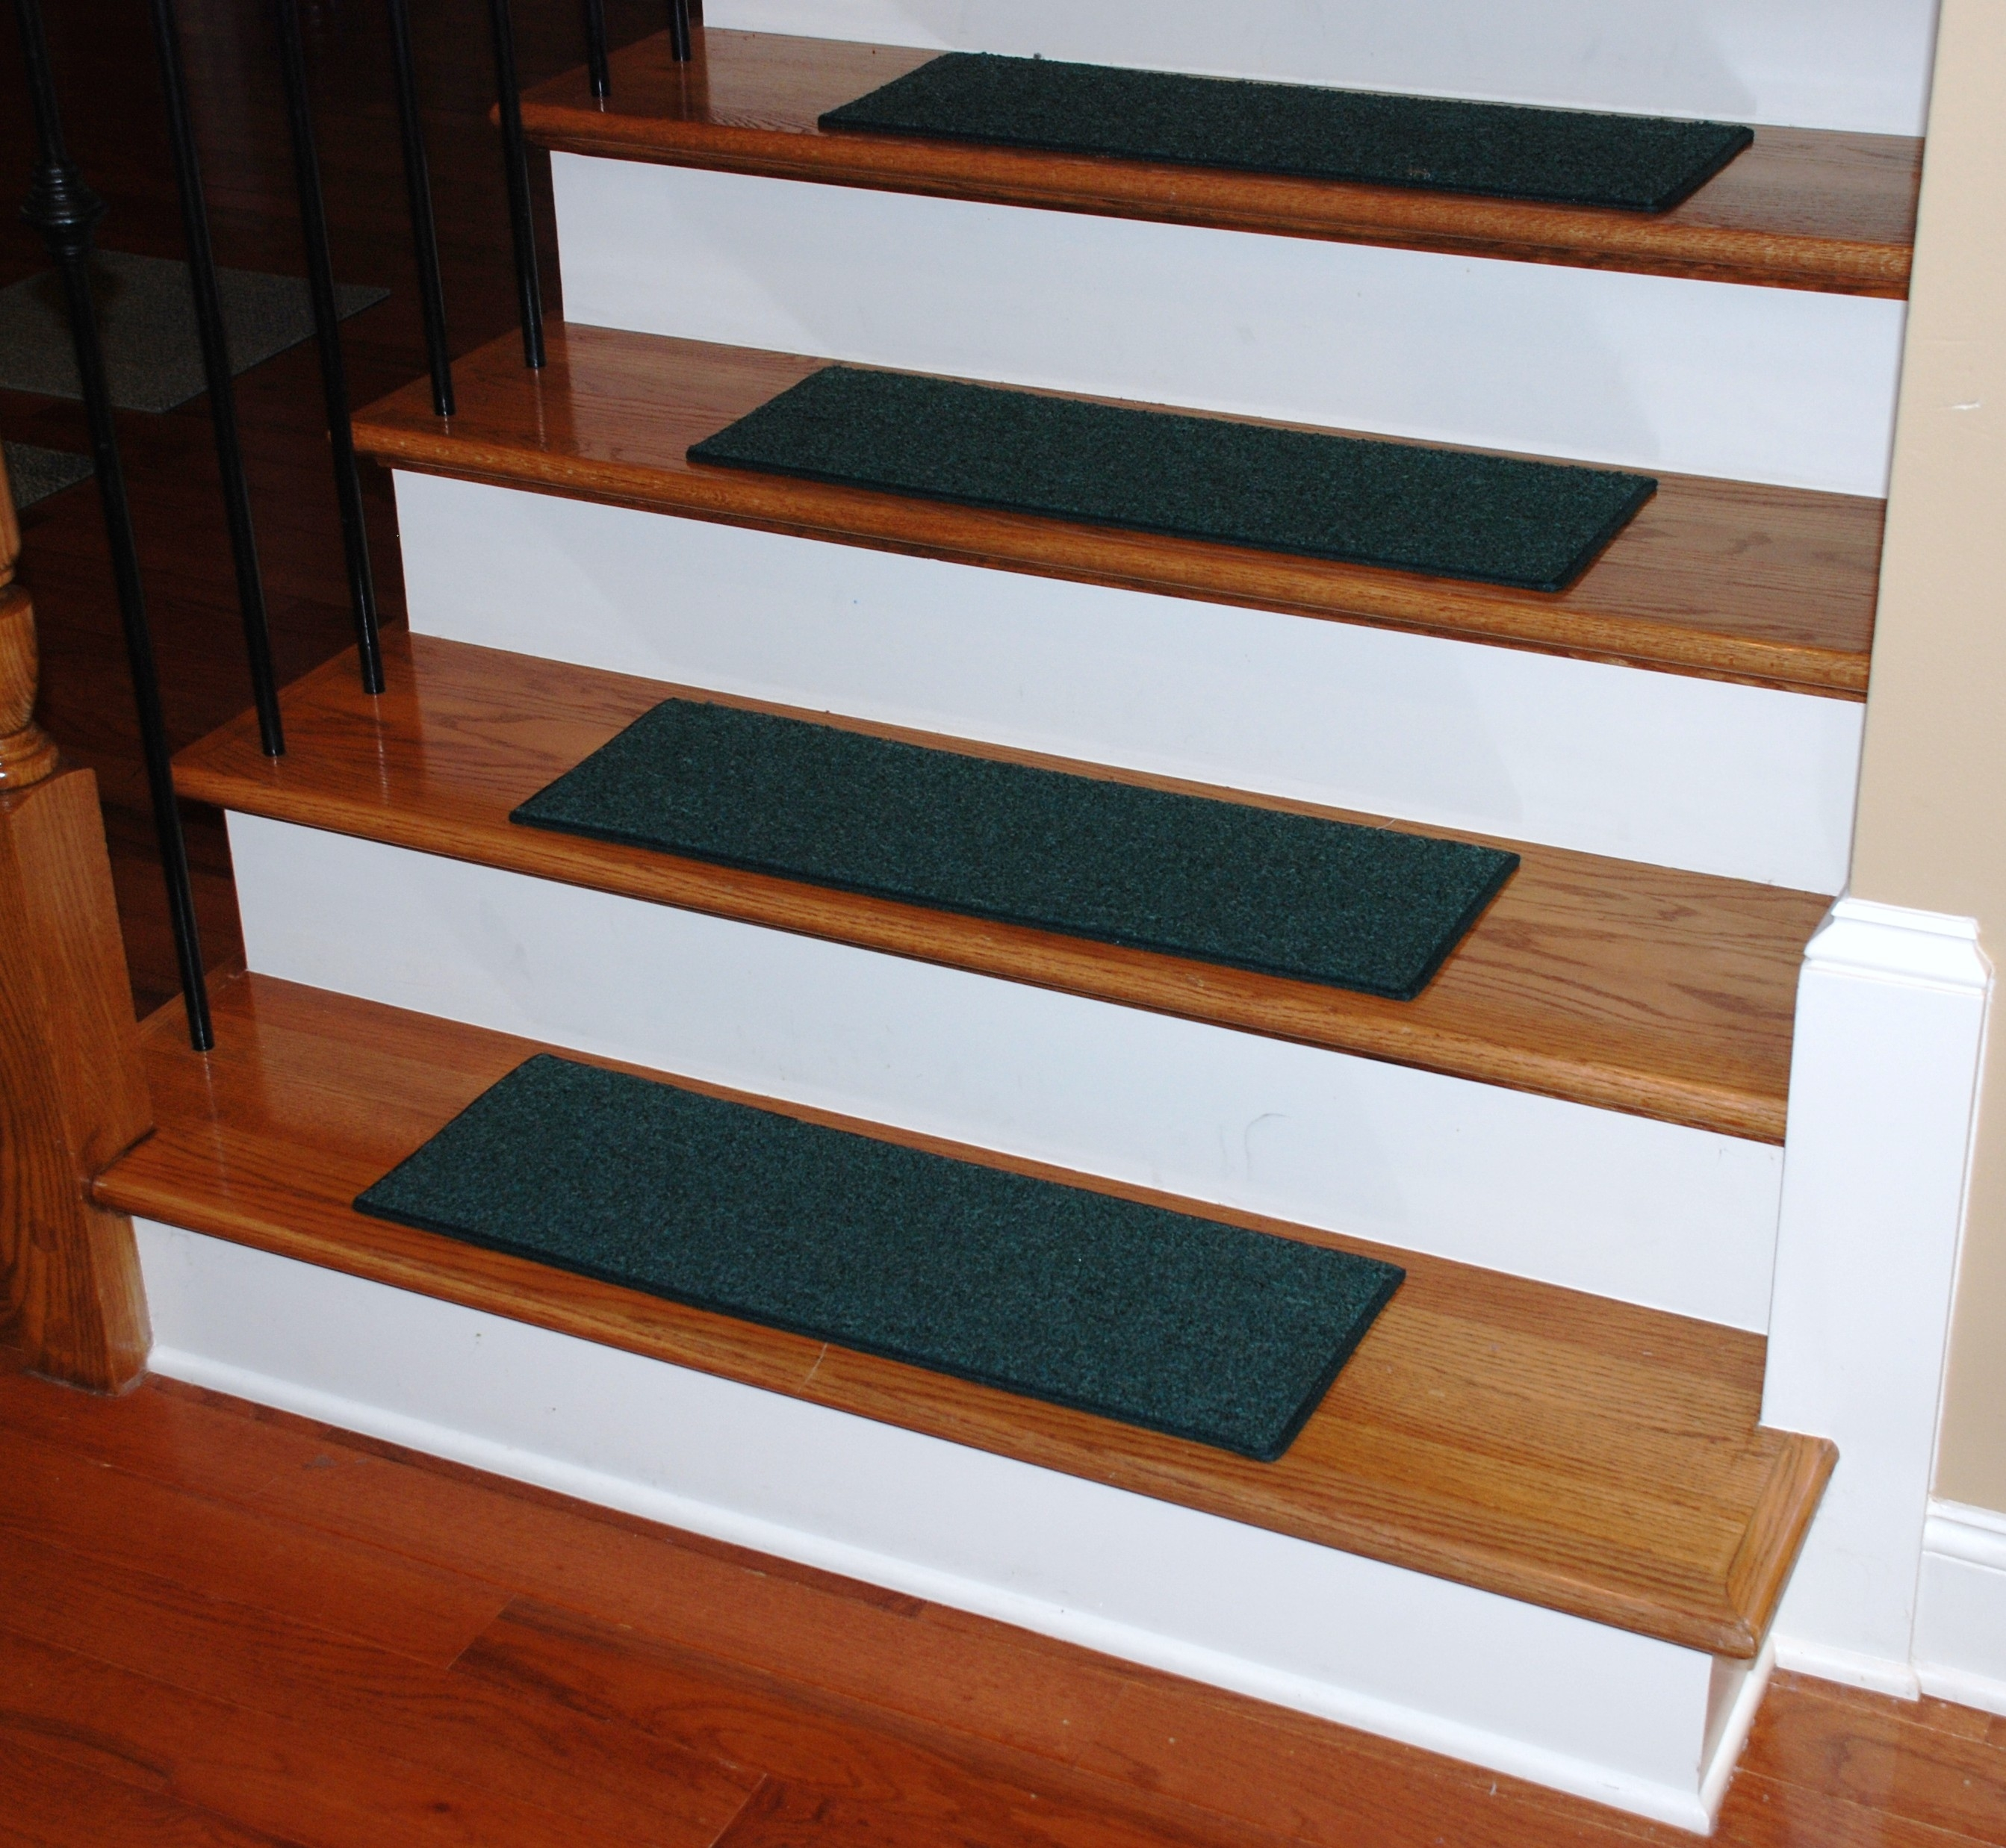 Compact Stair Tread Rugs Contemporary 30 Stair Tread Rugs Within Contemporary Stair Treads (View 7 of 15)